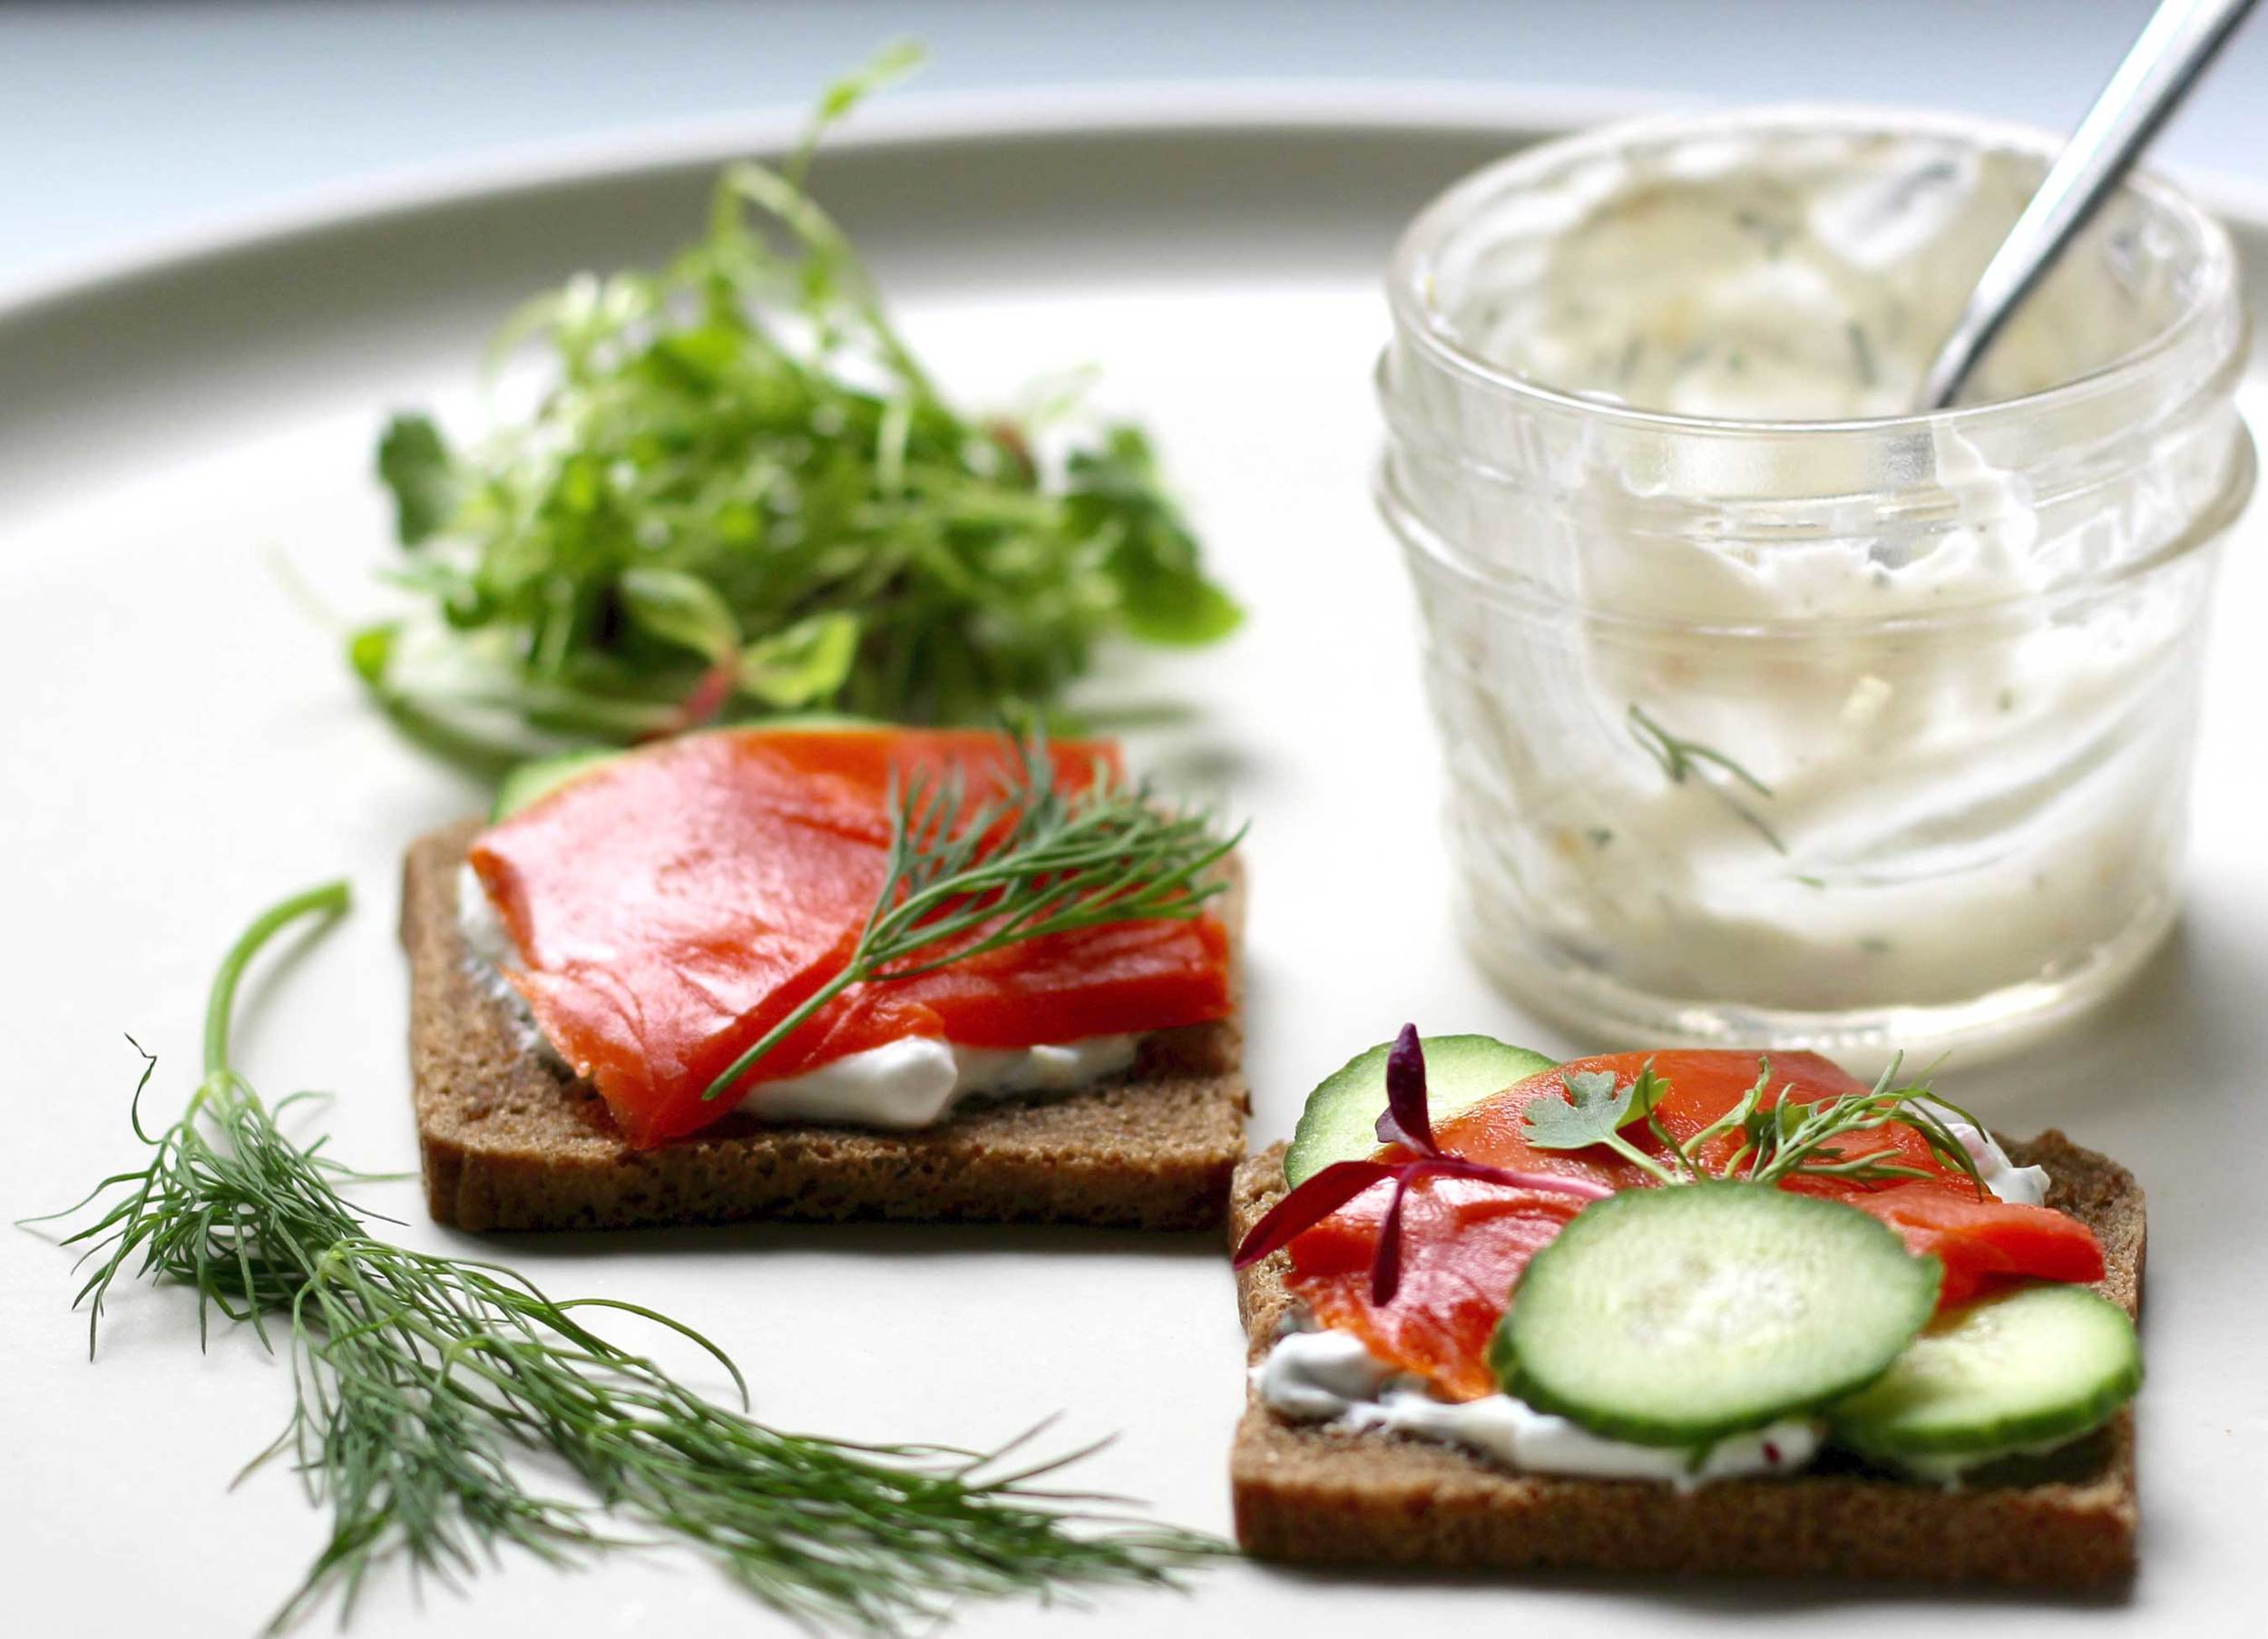 Making salmon, cucumber canapes with dill and creme fraiche